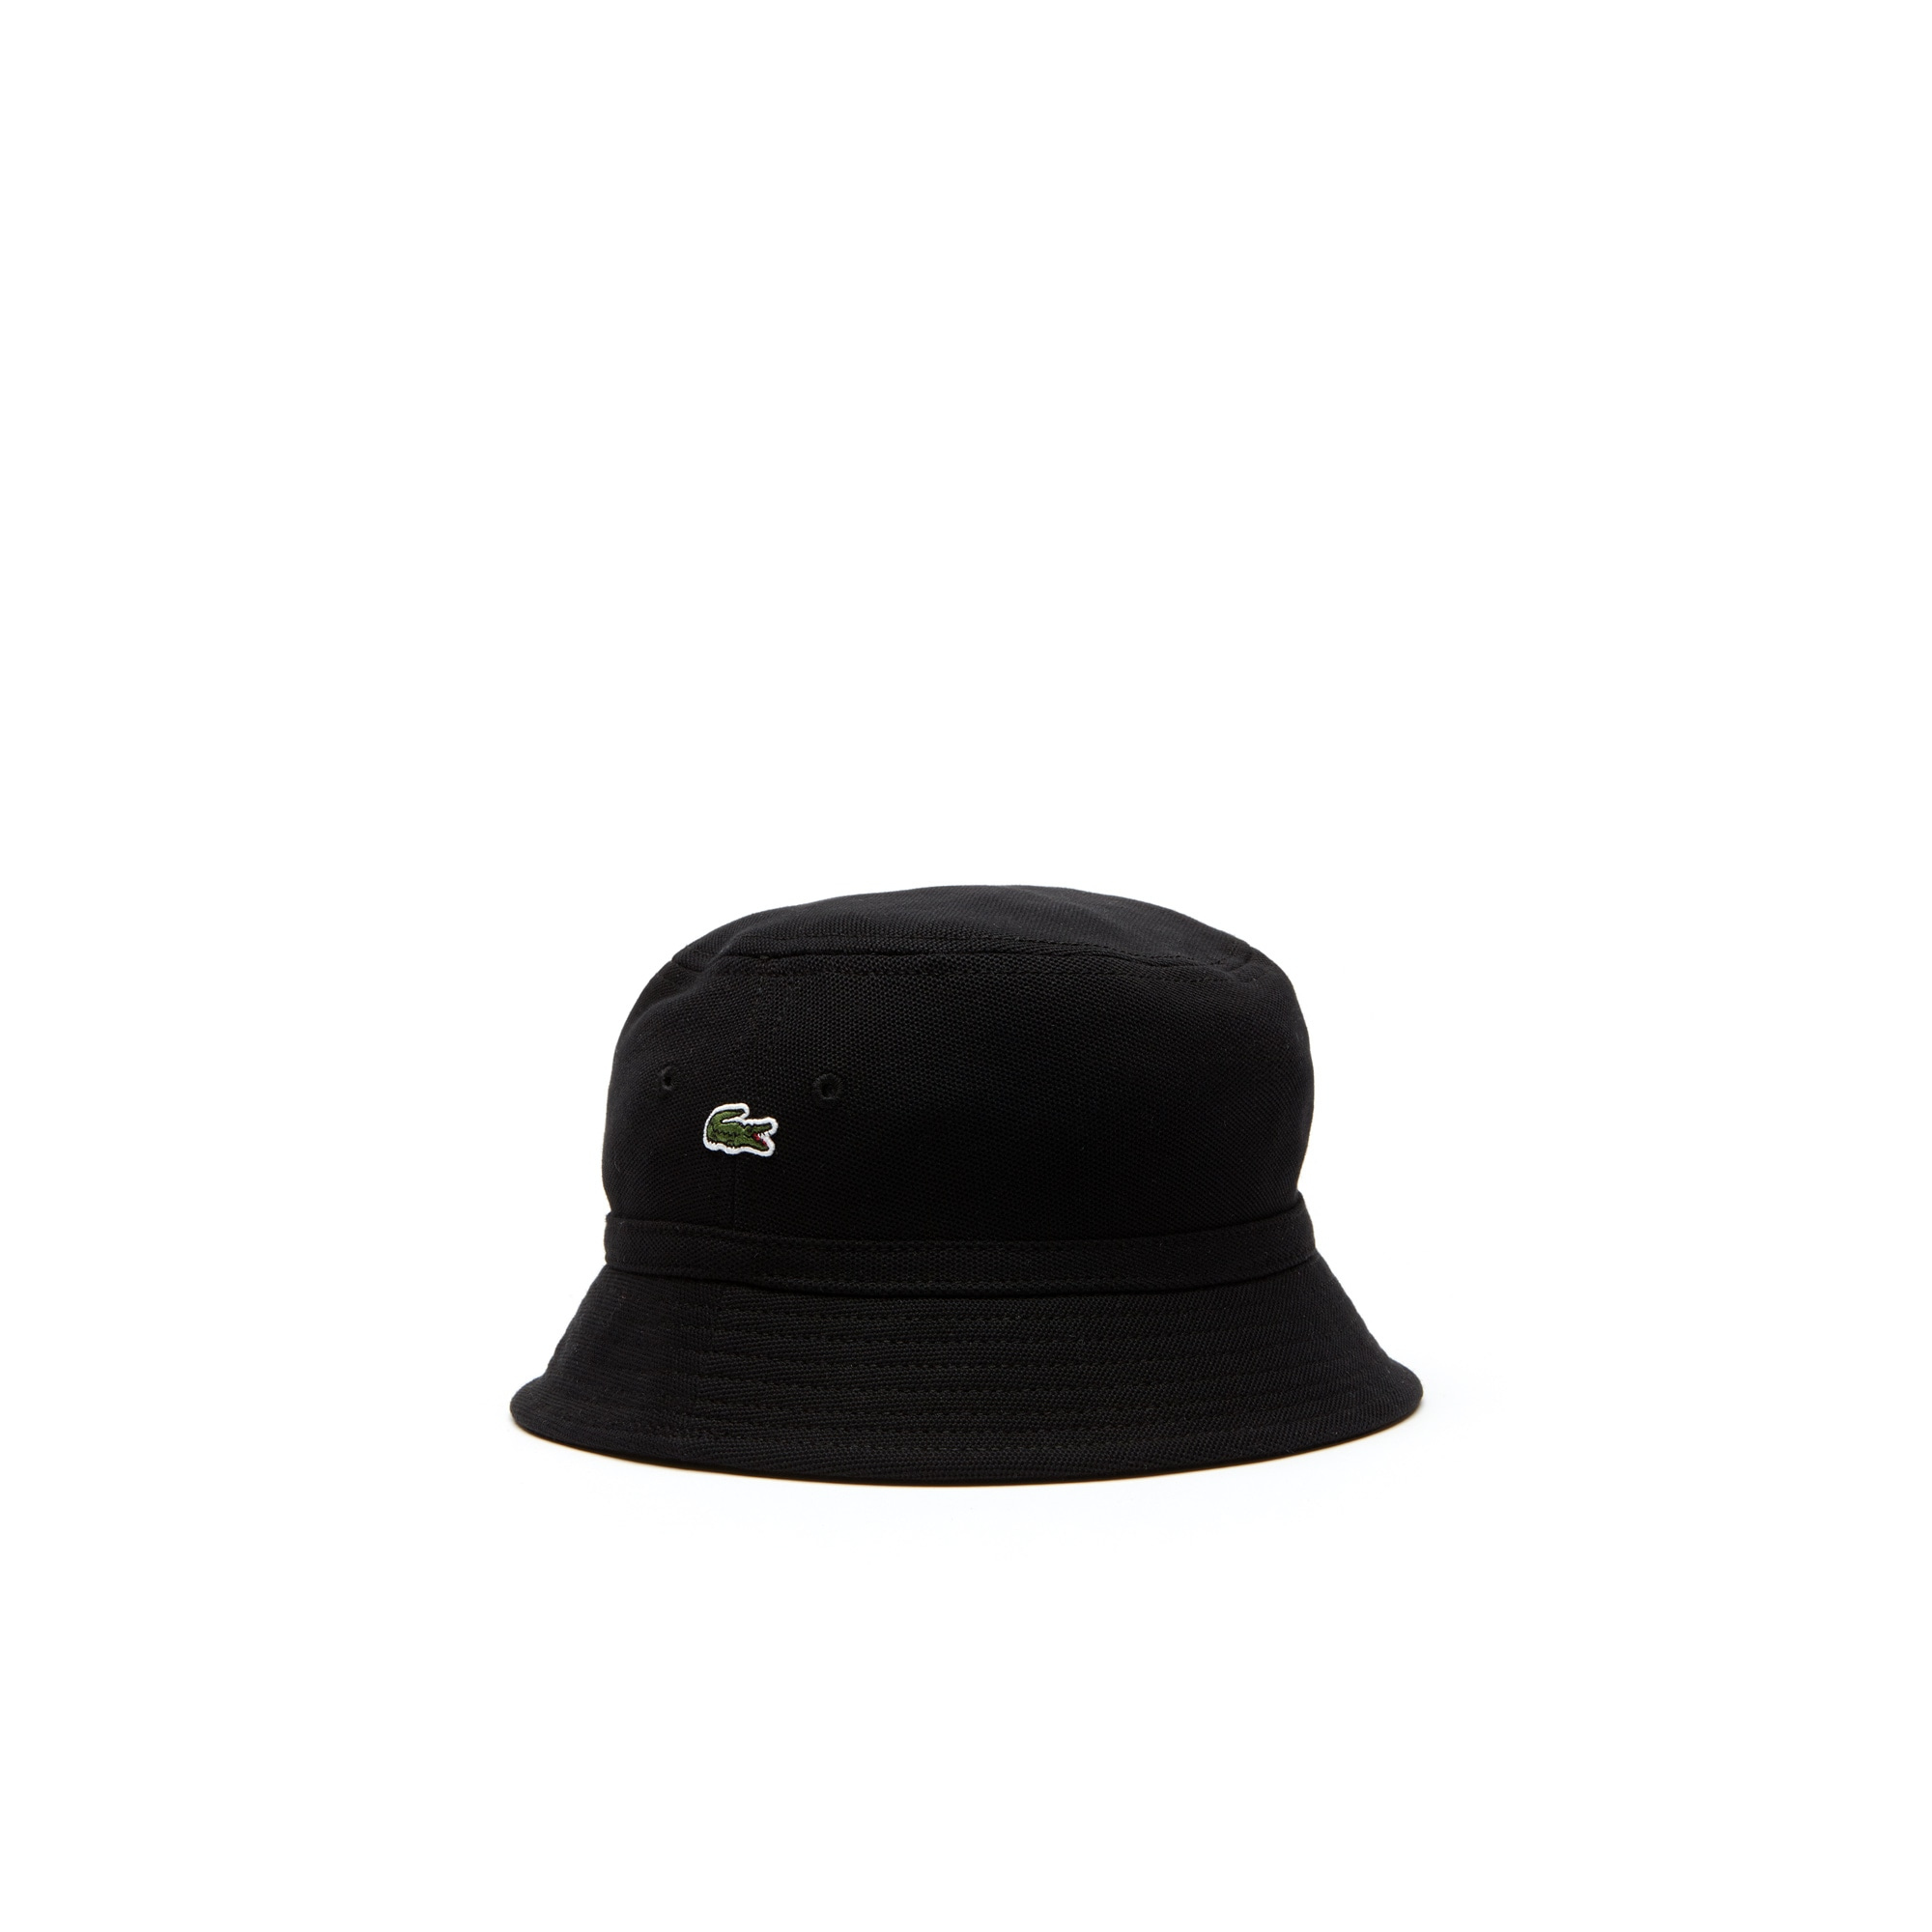 fd37e0bdd2027f Men's Cotton piqué bucket hat | LACOSTE